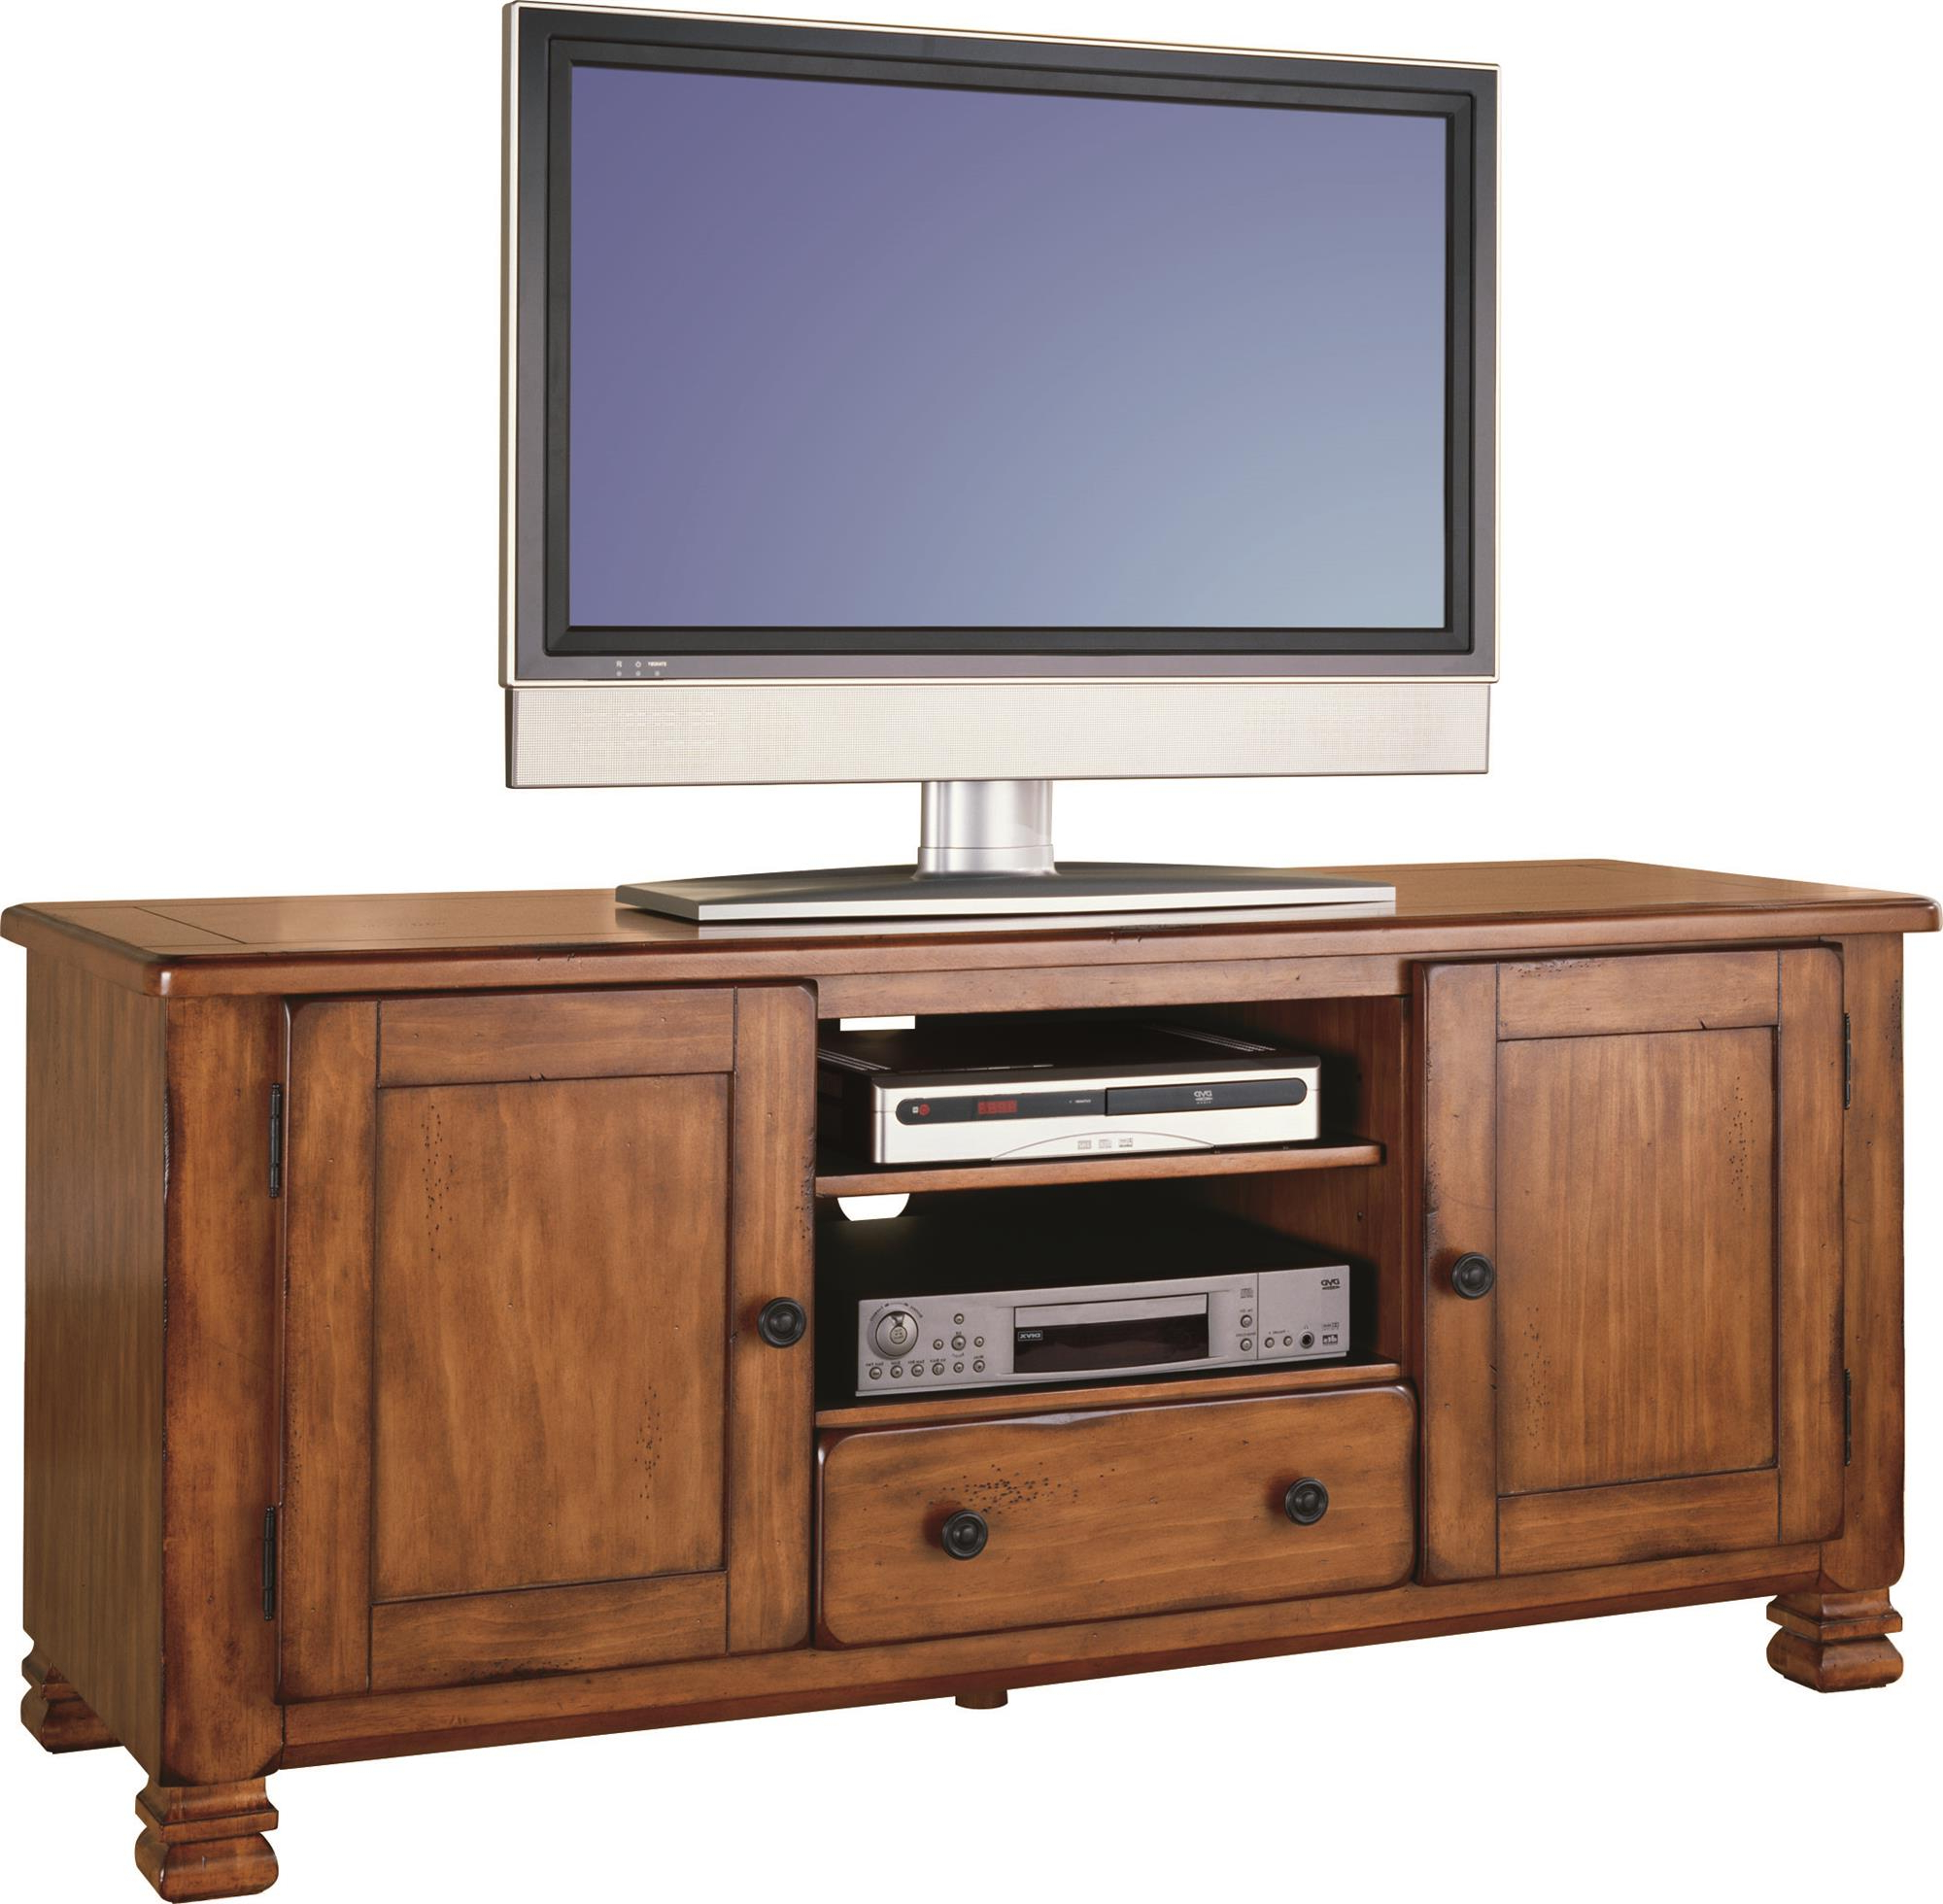 Ameriwood Home Summit Mountain Wood Veneer Tv Stand For Throughout Indi Wide Tv Stands (View 2 of 20)